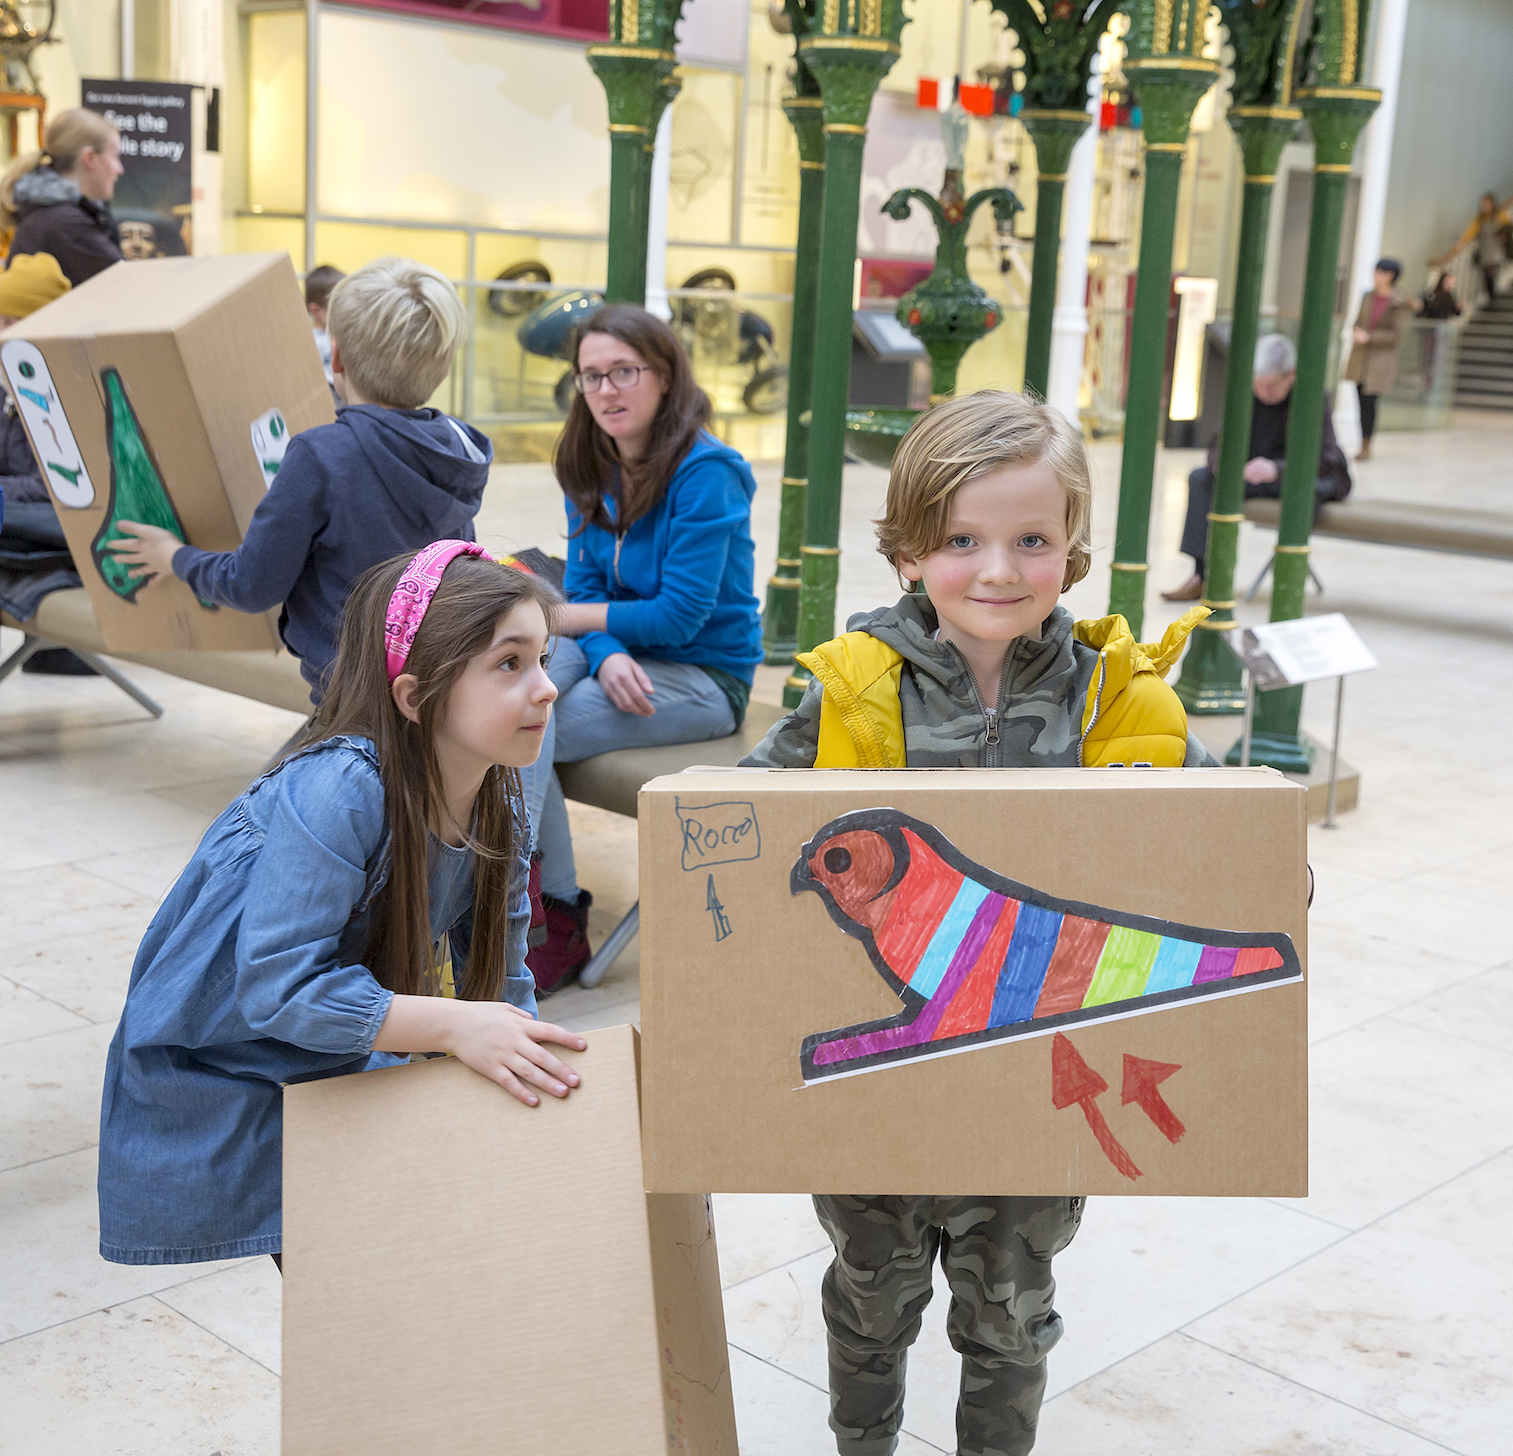 national_museum_scotland_pyramid_ancient_egypt_cardboard_workshop.jpg